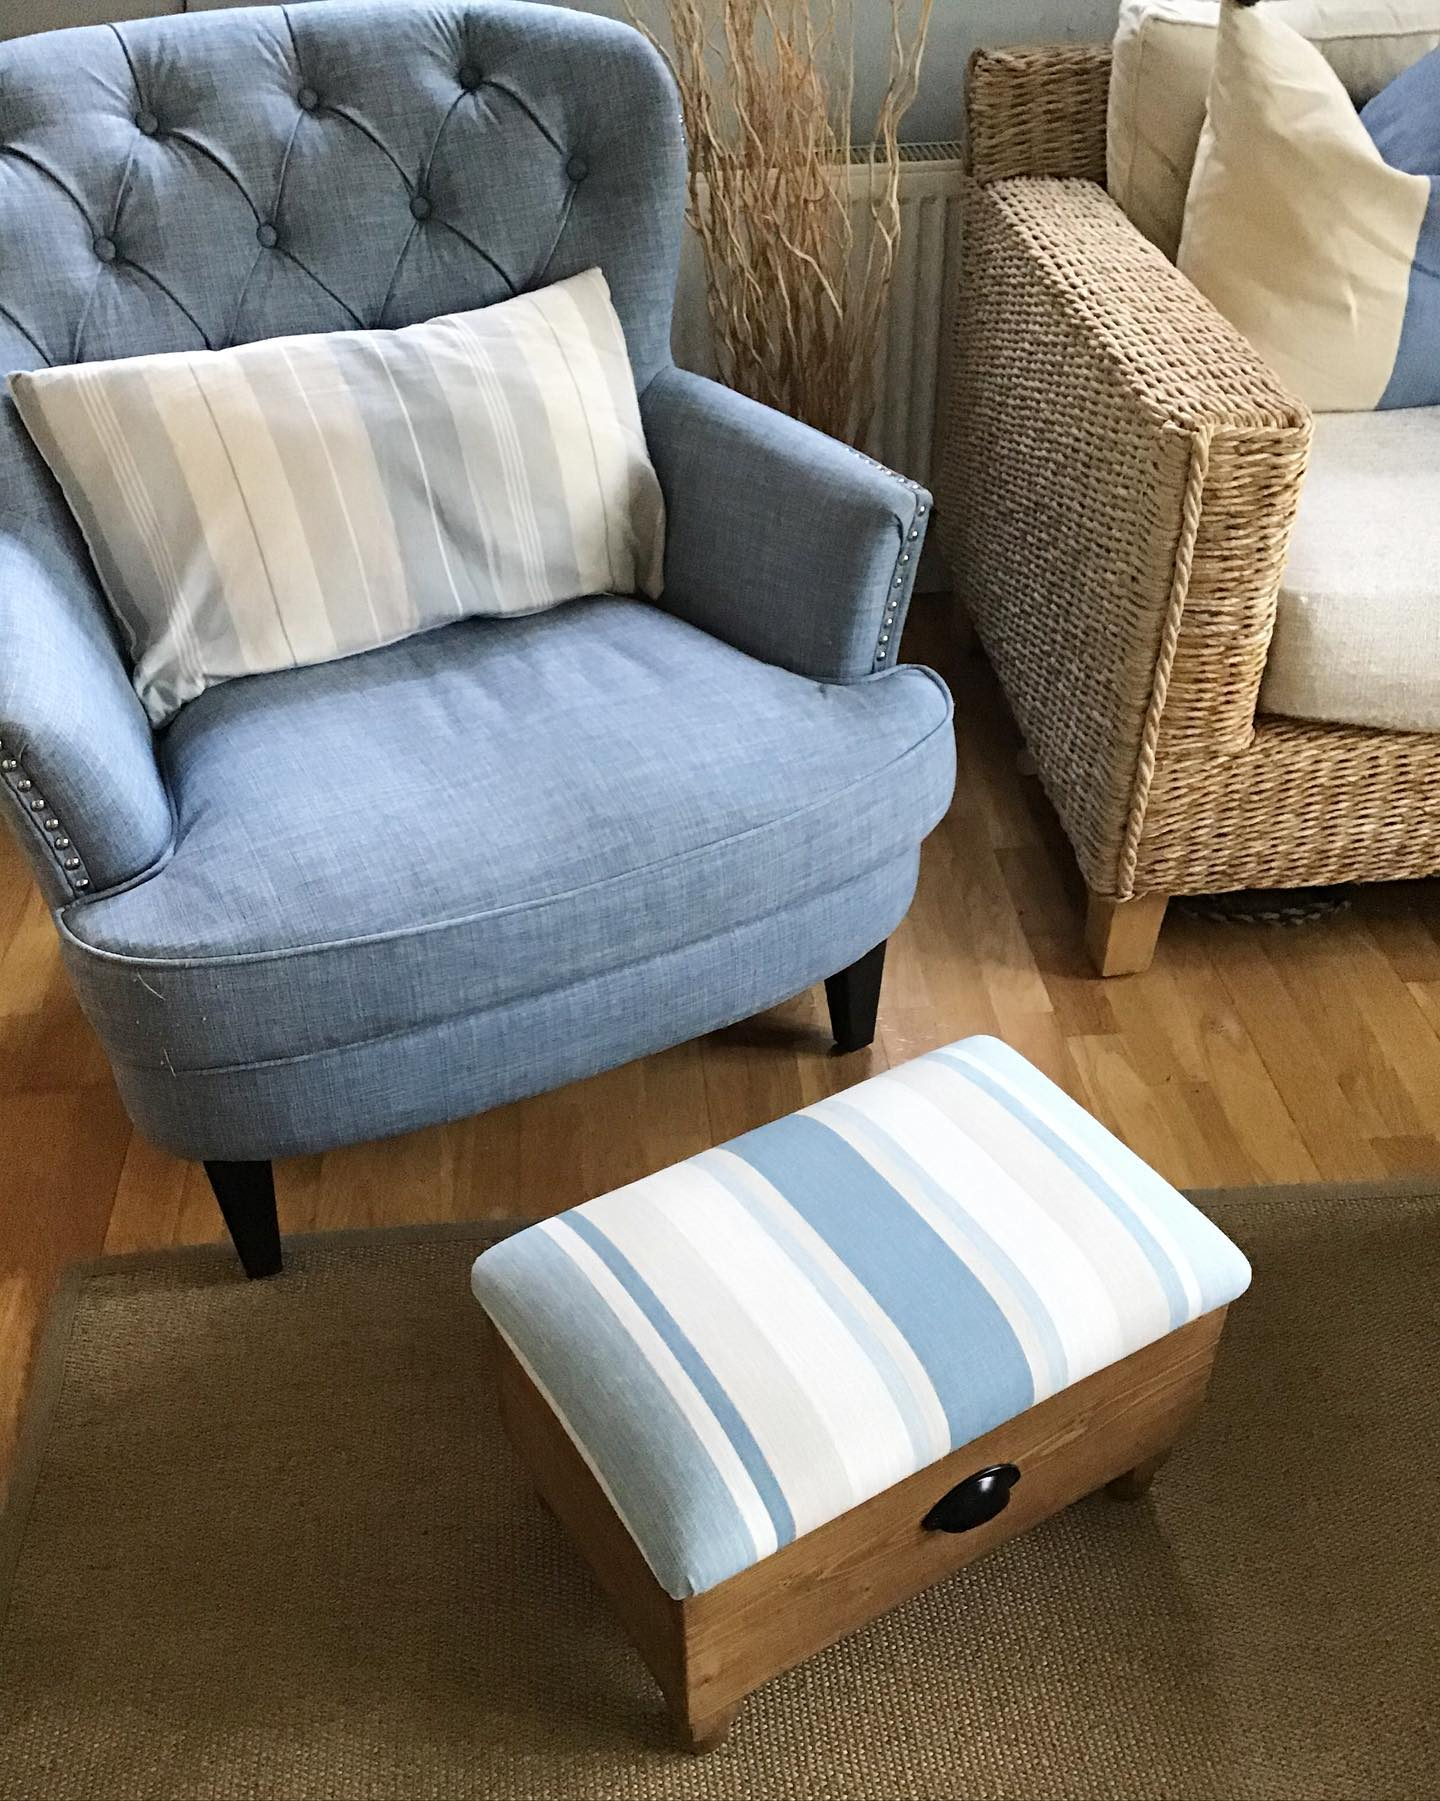 We often get asked if we can use different finishes on our ottomans, here we've used a medium oak finish on the wood so it matches other furniture in this lovely living space. ...#homedecor #matching #complimentary #fabricchoice #woodtreatments #lauraashley #stripes #oak #livingroom #bespoke #customise #giftideas